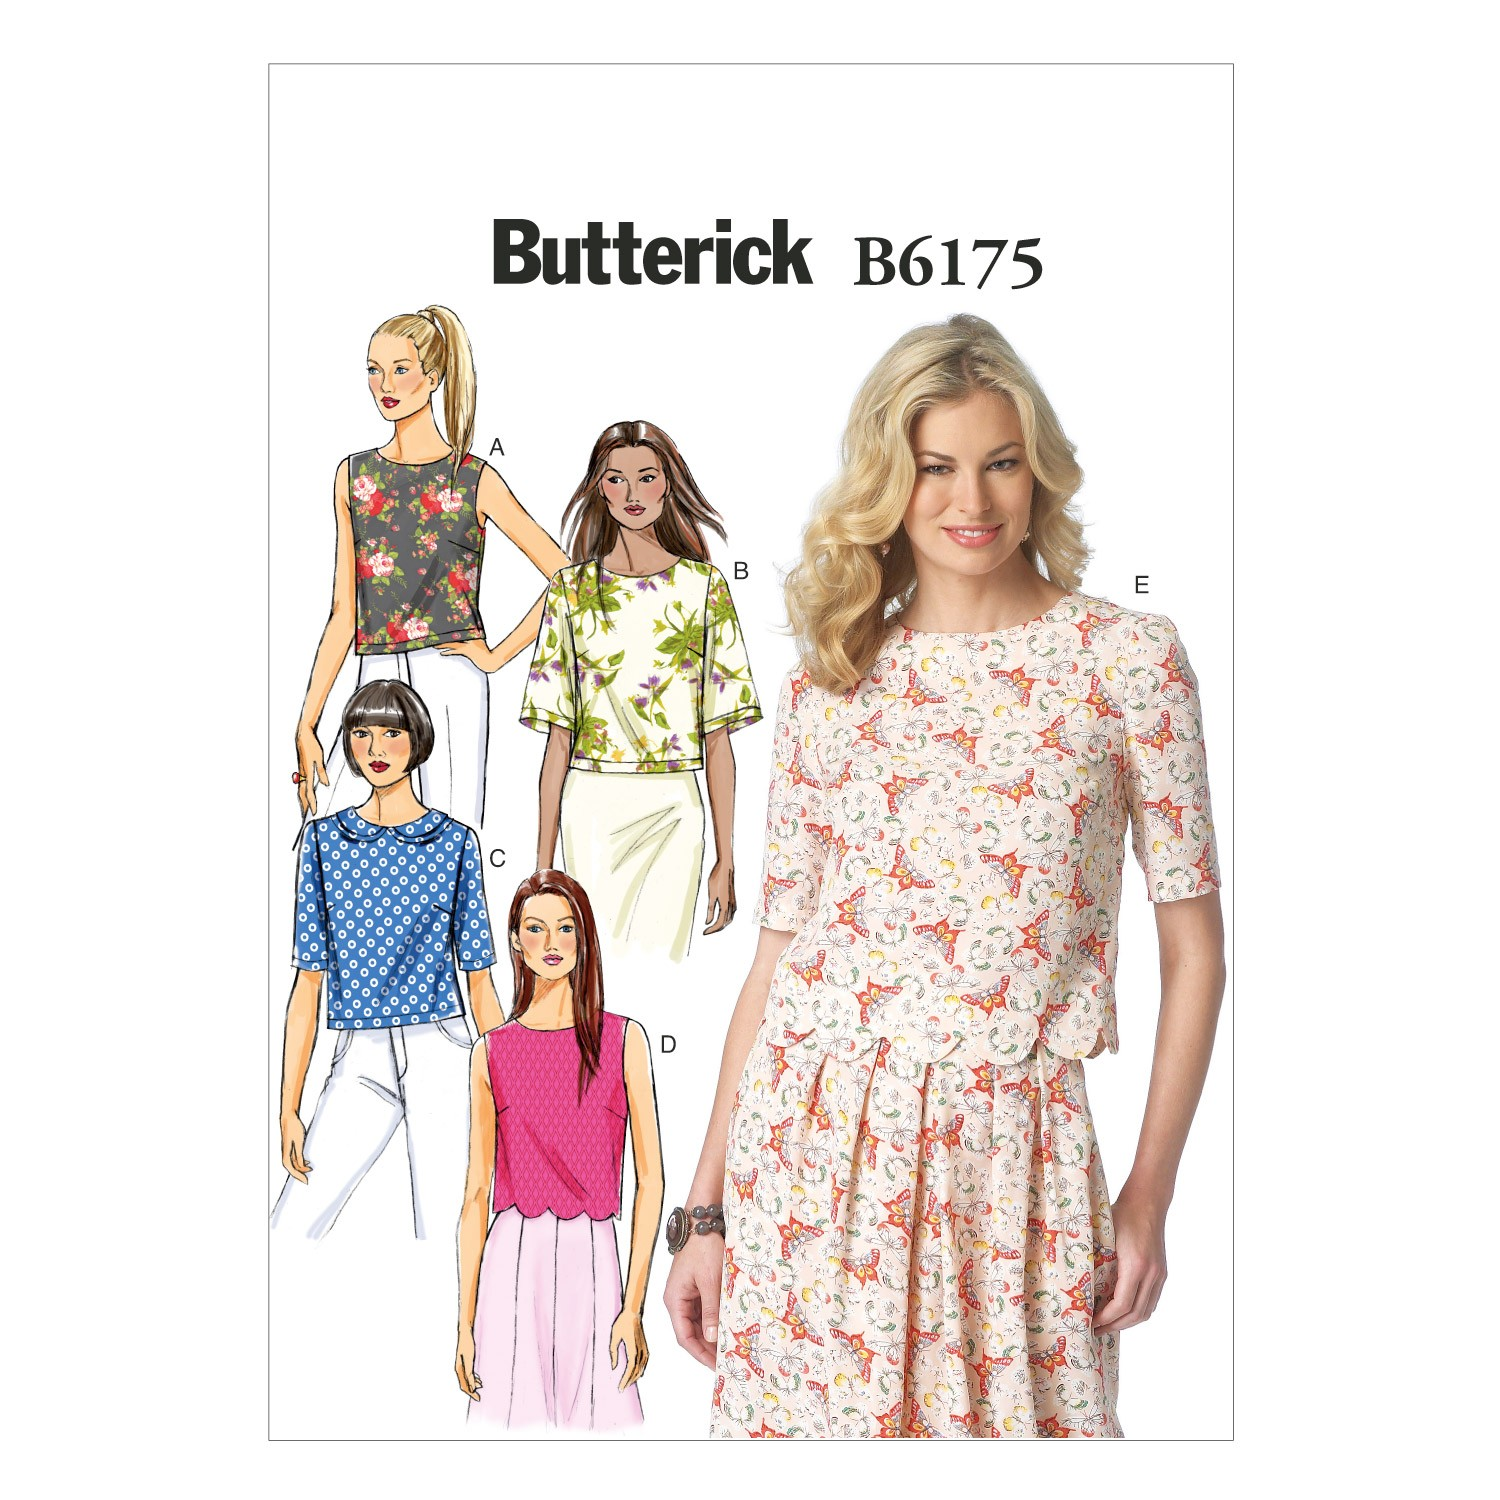 Butterick Sewing Pattern 6175 Misses' Semi Fitted Pullover Top